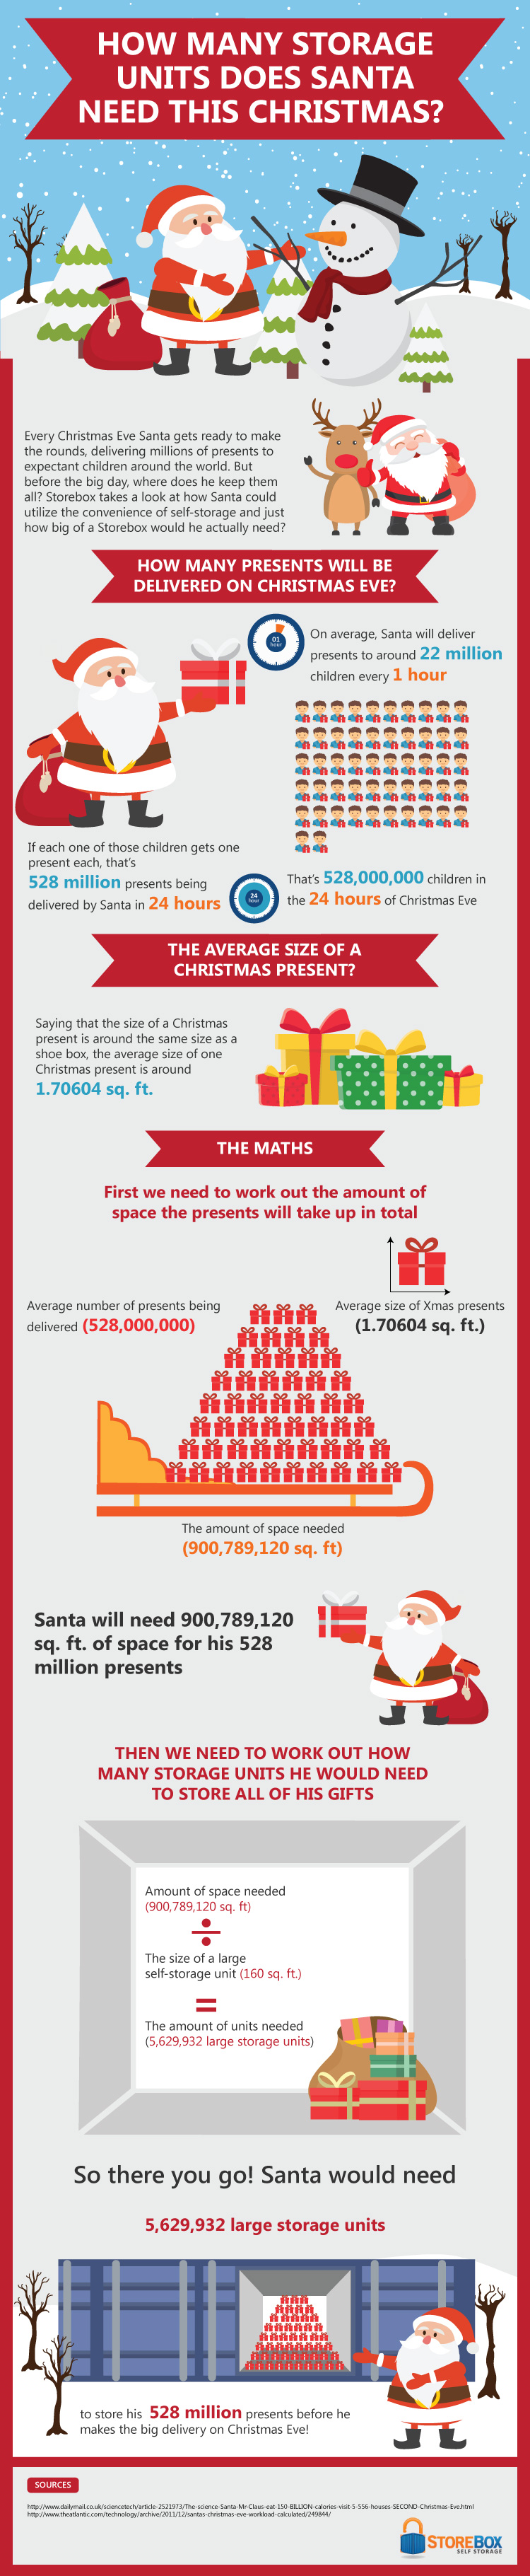 storebox_santa_infographic